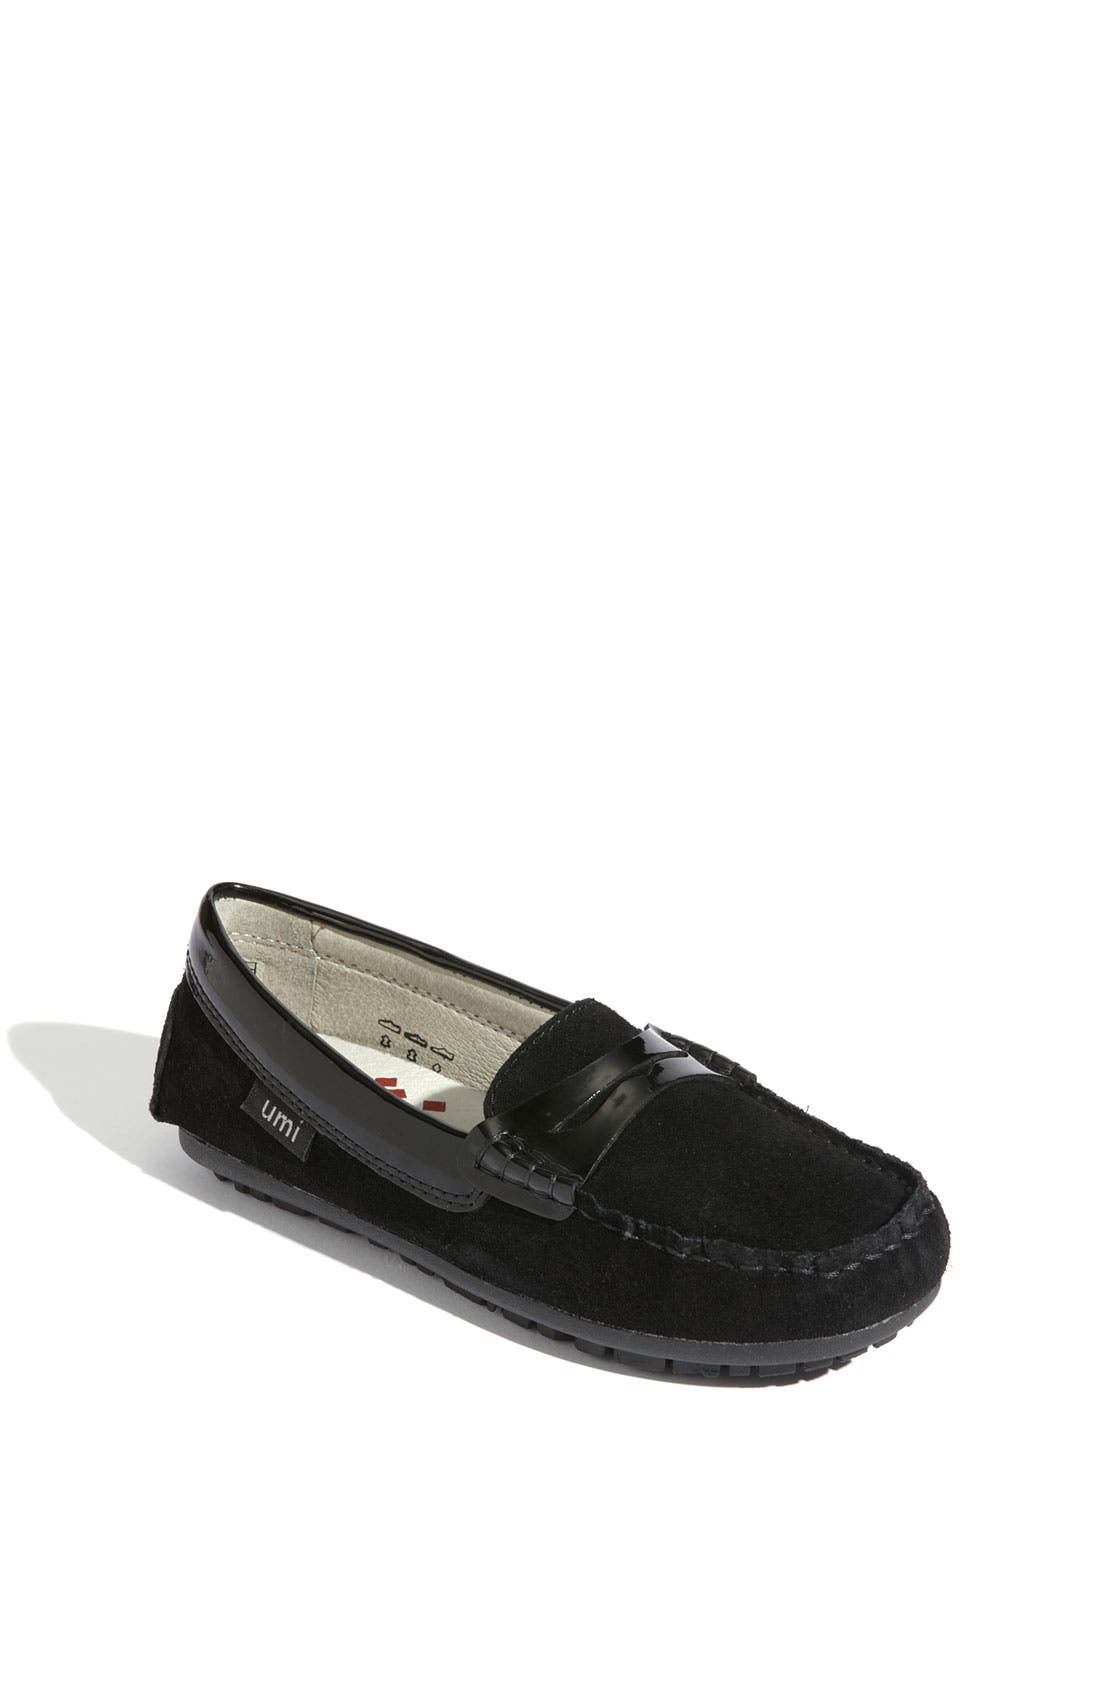 Main Image - Umi 'Morie' Moccasin (Toddler)